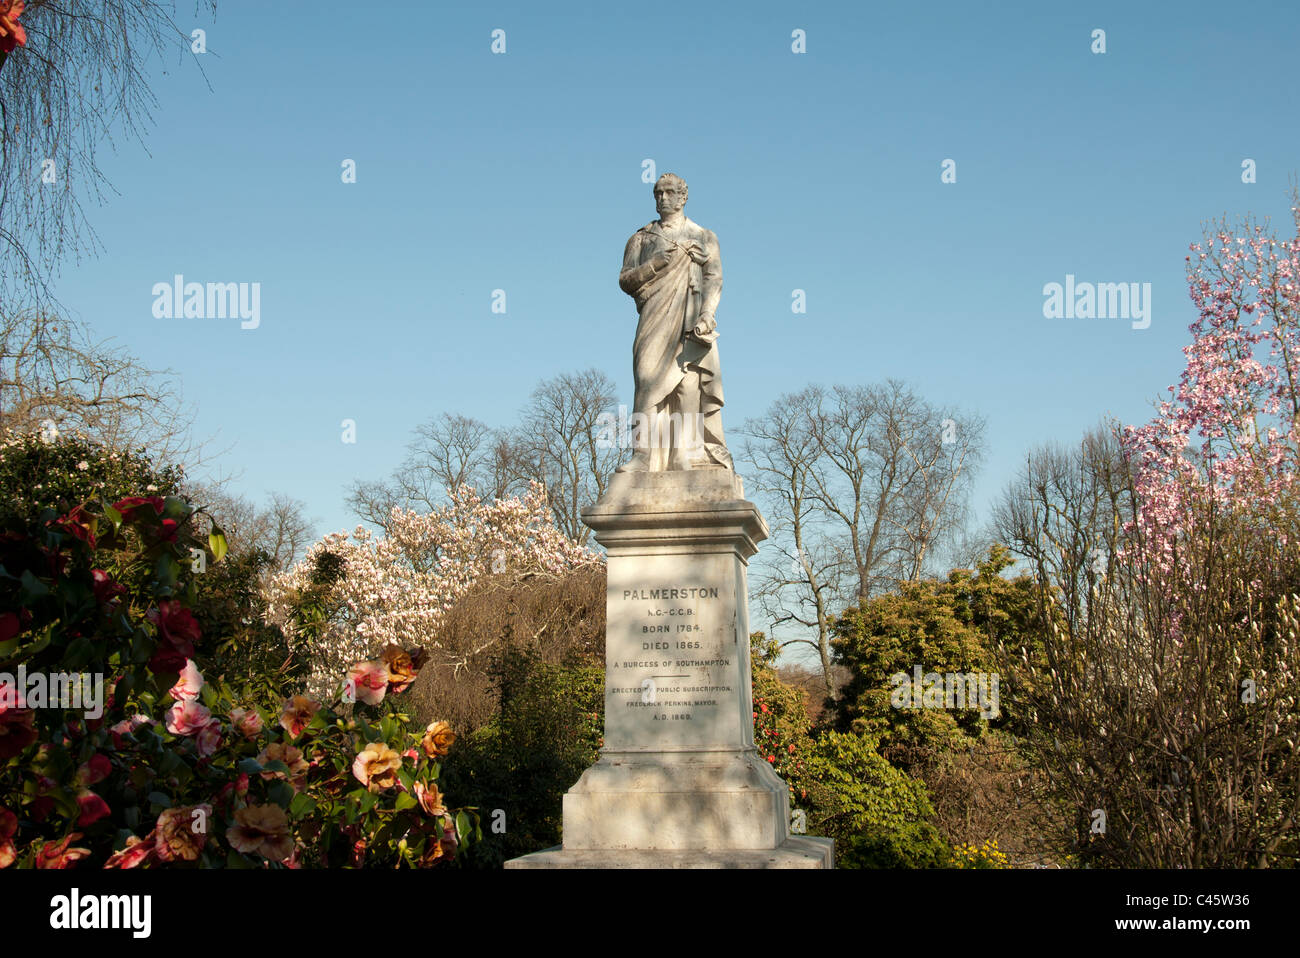 Statue of Palmerston in Palmerston Park Southampton Hampshire UK Stock Photo